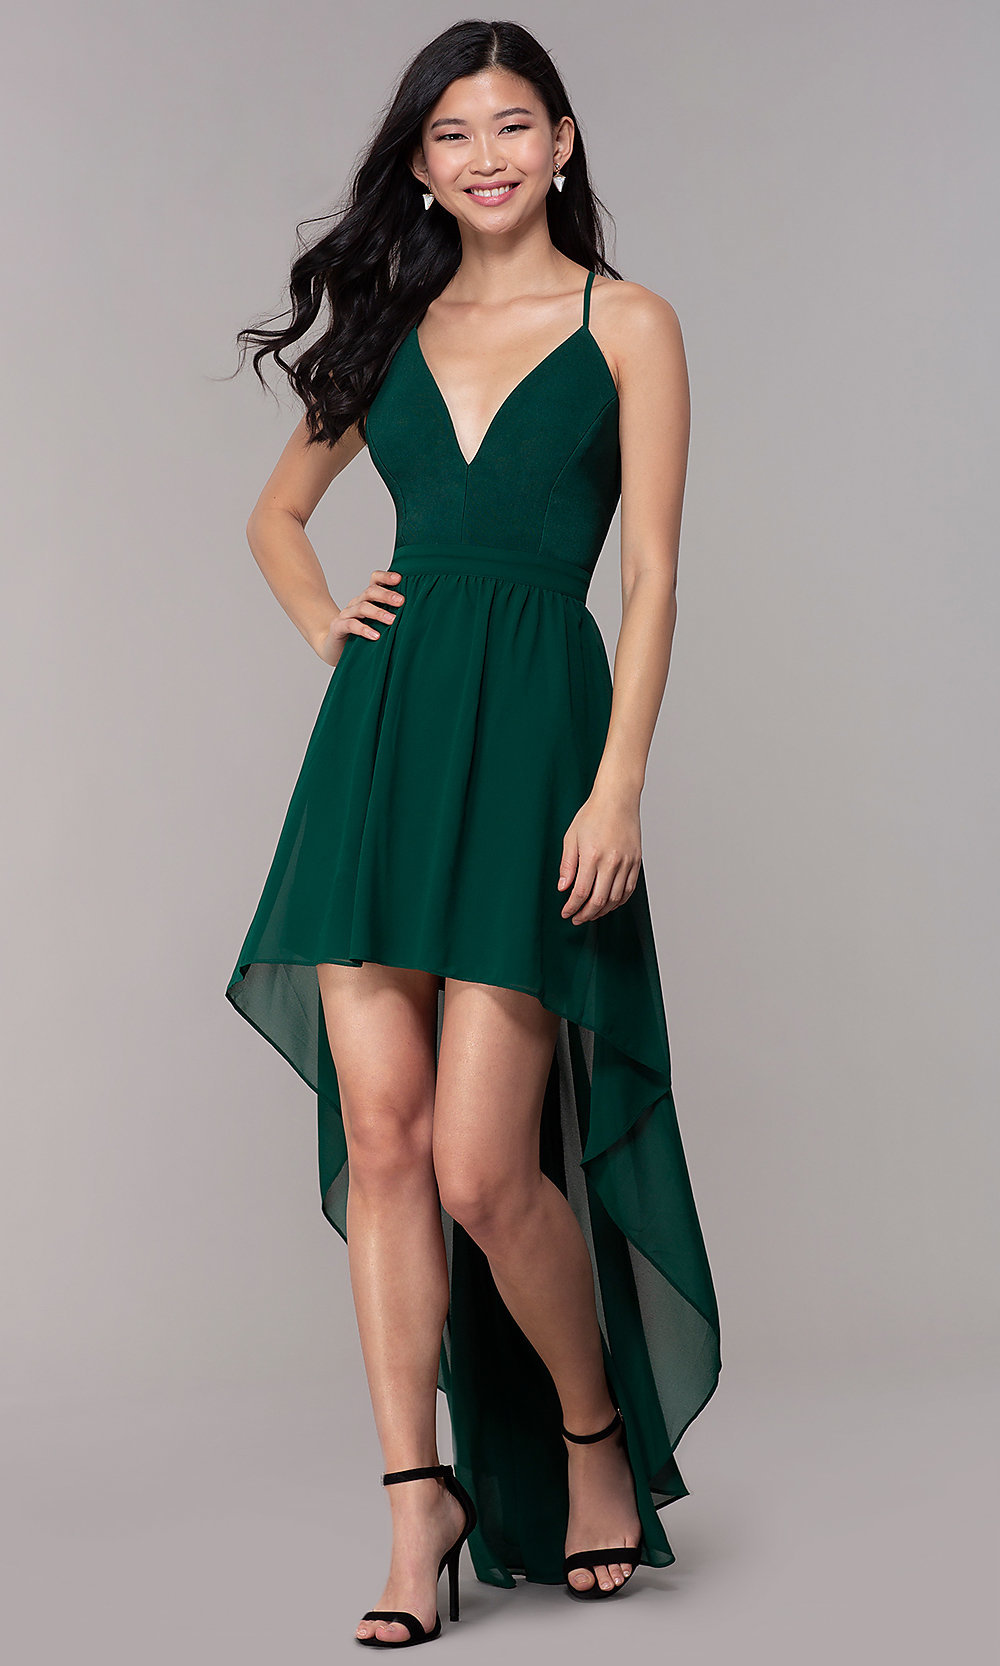 High Low Green Wedding Guest Dress Promgirl,Casual Plus Size Wedding Dresses With Color